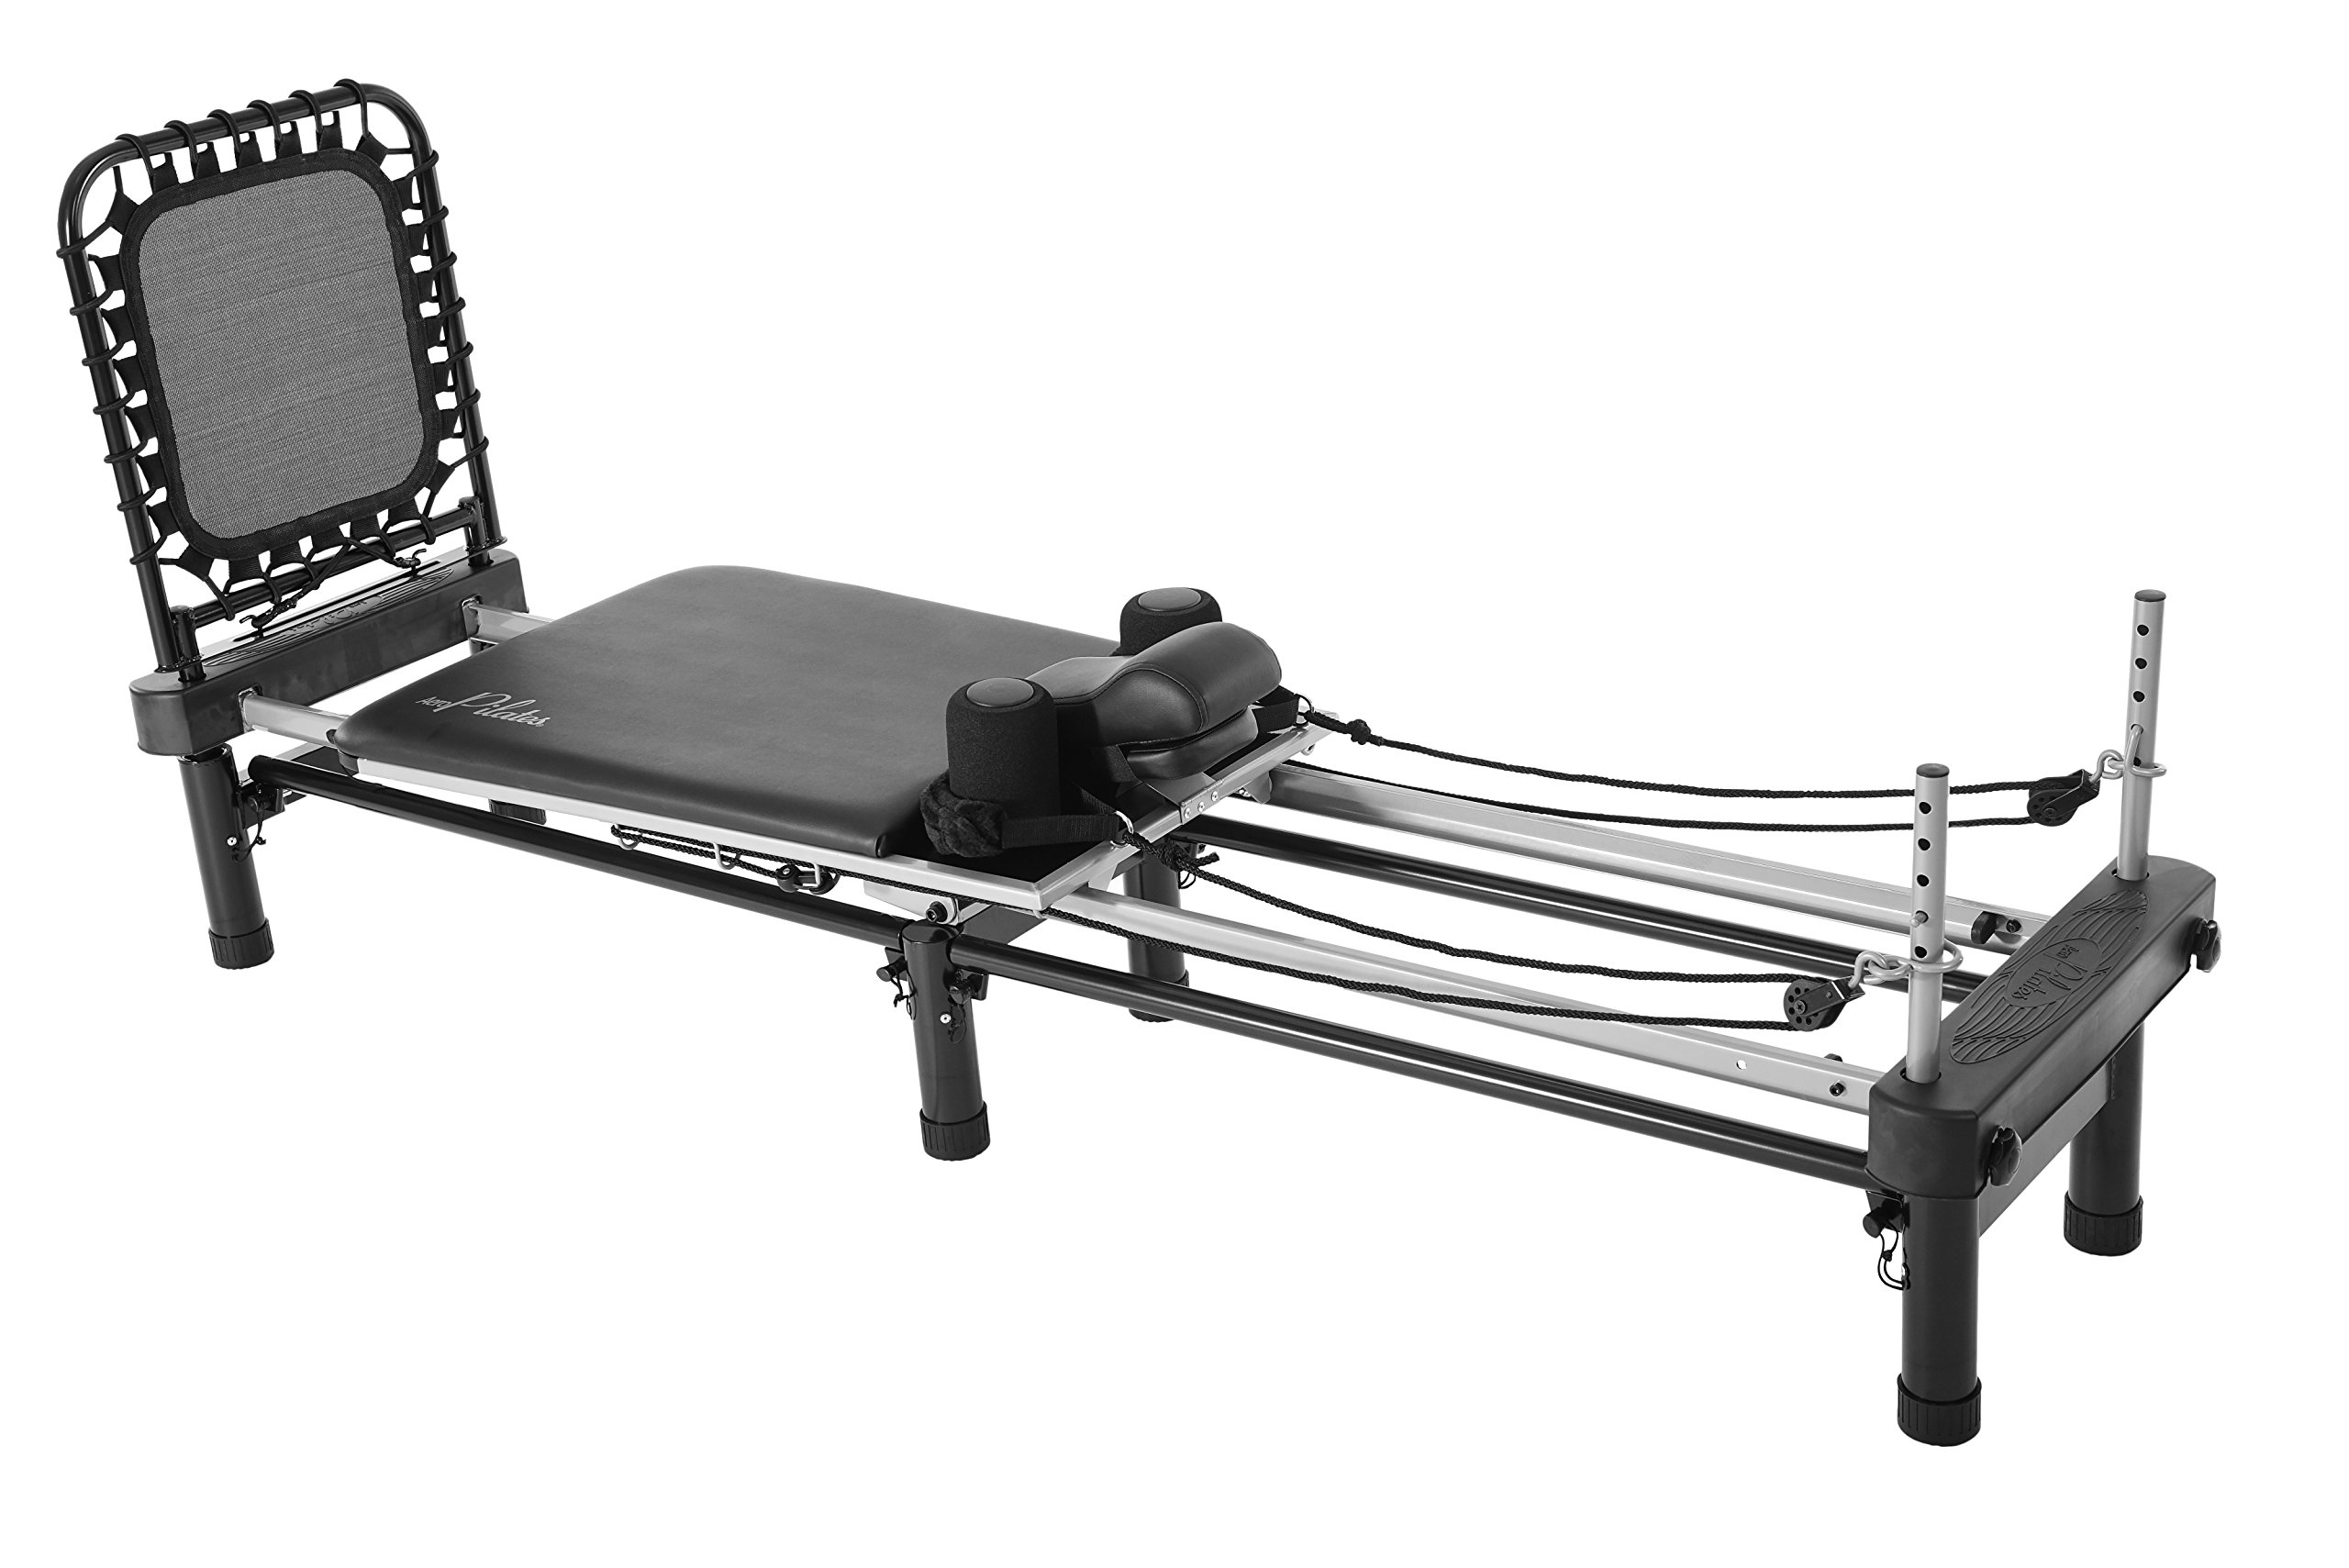 Stamina AeroPilates 700 Premier Reformer with Stand, Cardio Rebounder, Neck Pillow and DVDs by Stamina (Image #1)